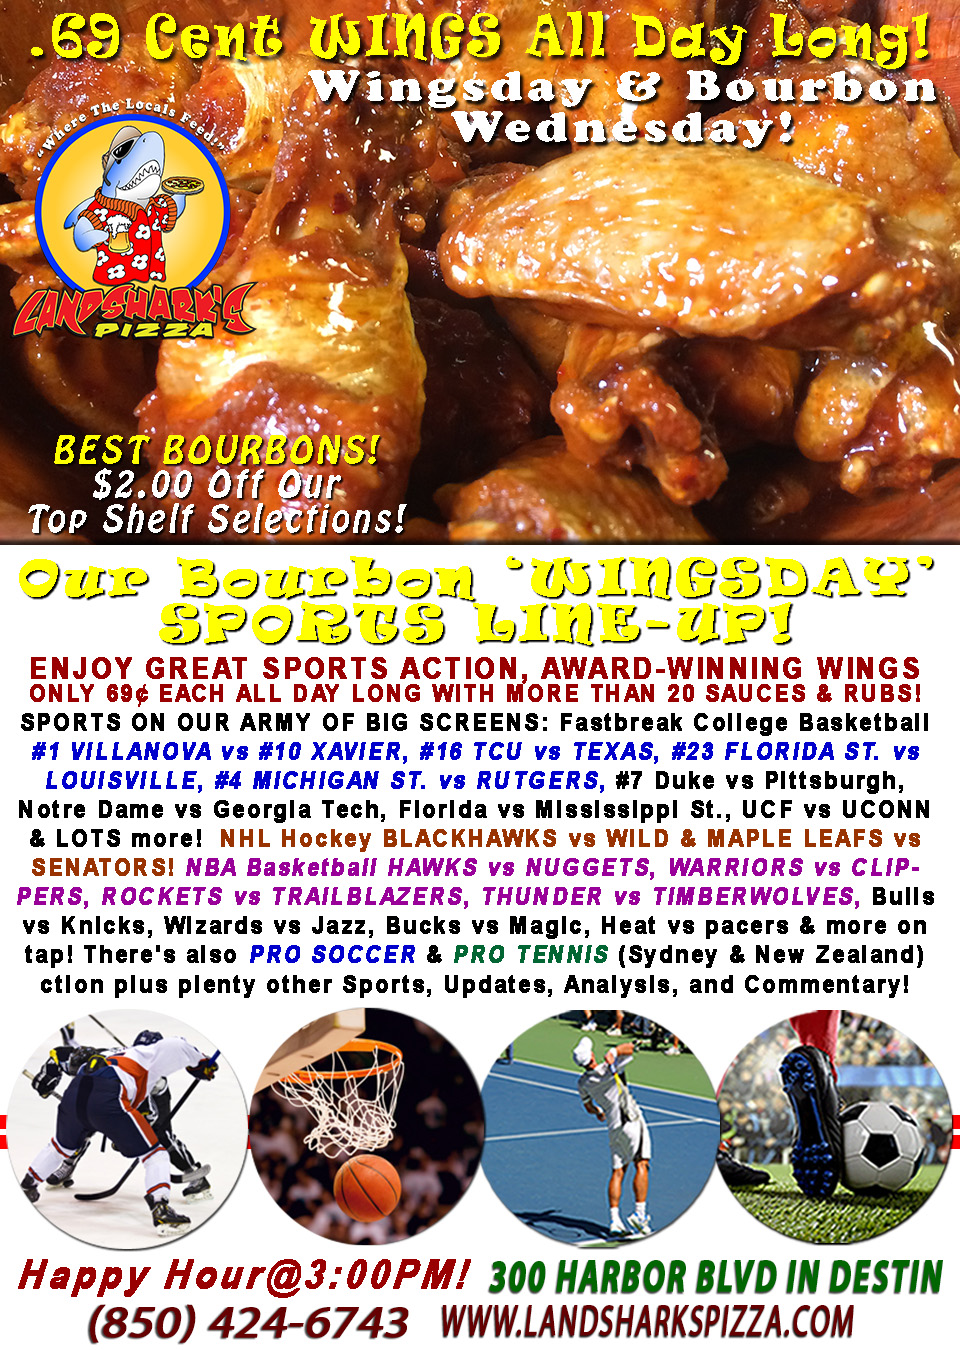 Award-Winning Wings Wednesday only 69¢ each NCAA #1 VILLANOVA, FLORIDA ST., LSU & More Hoops Excitement!